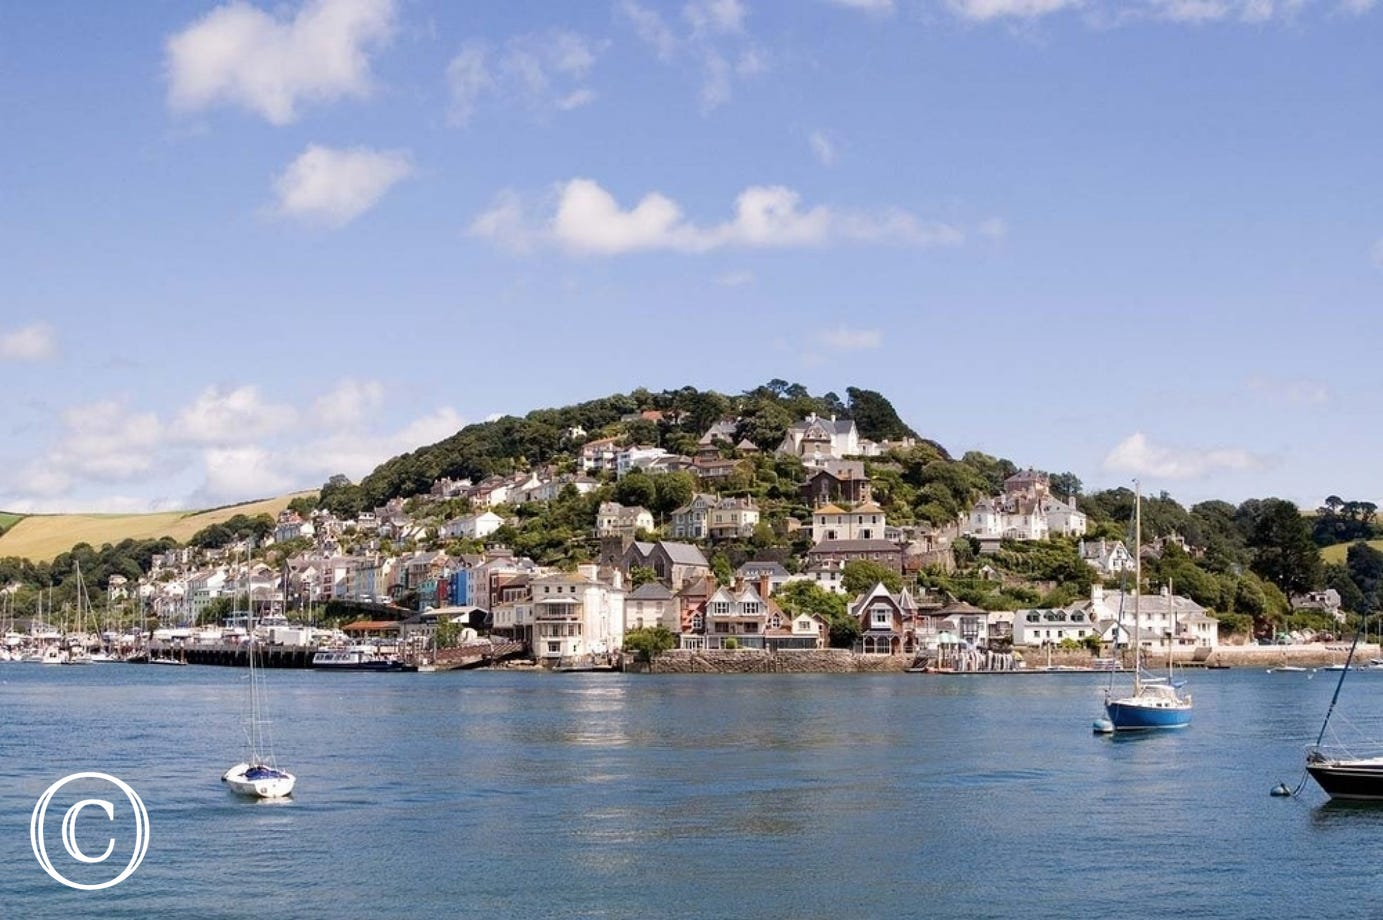 View of Kingswear from Dartmouth